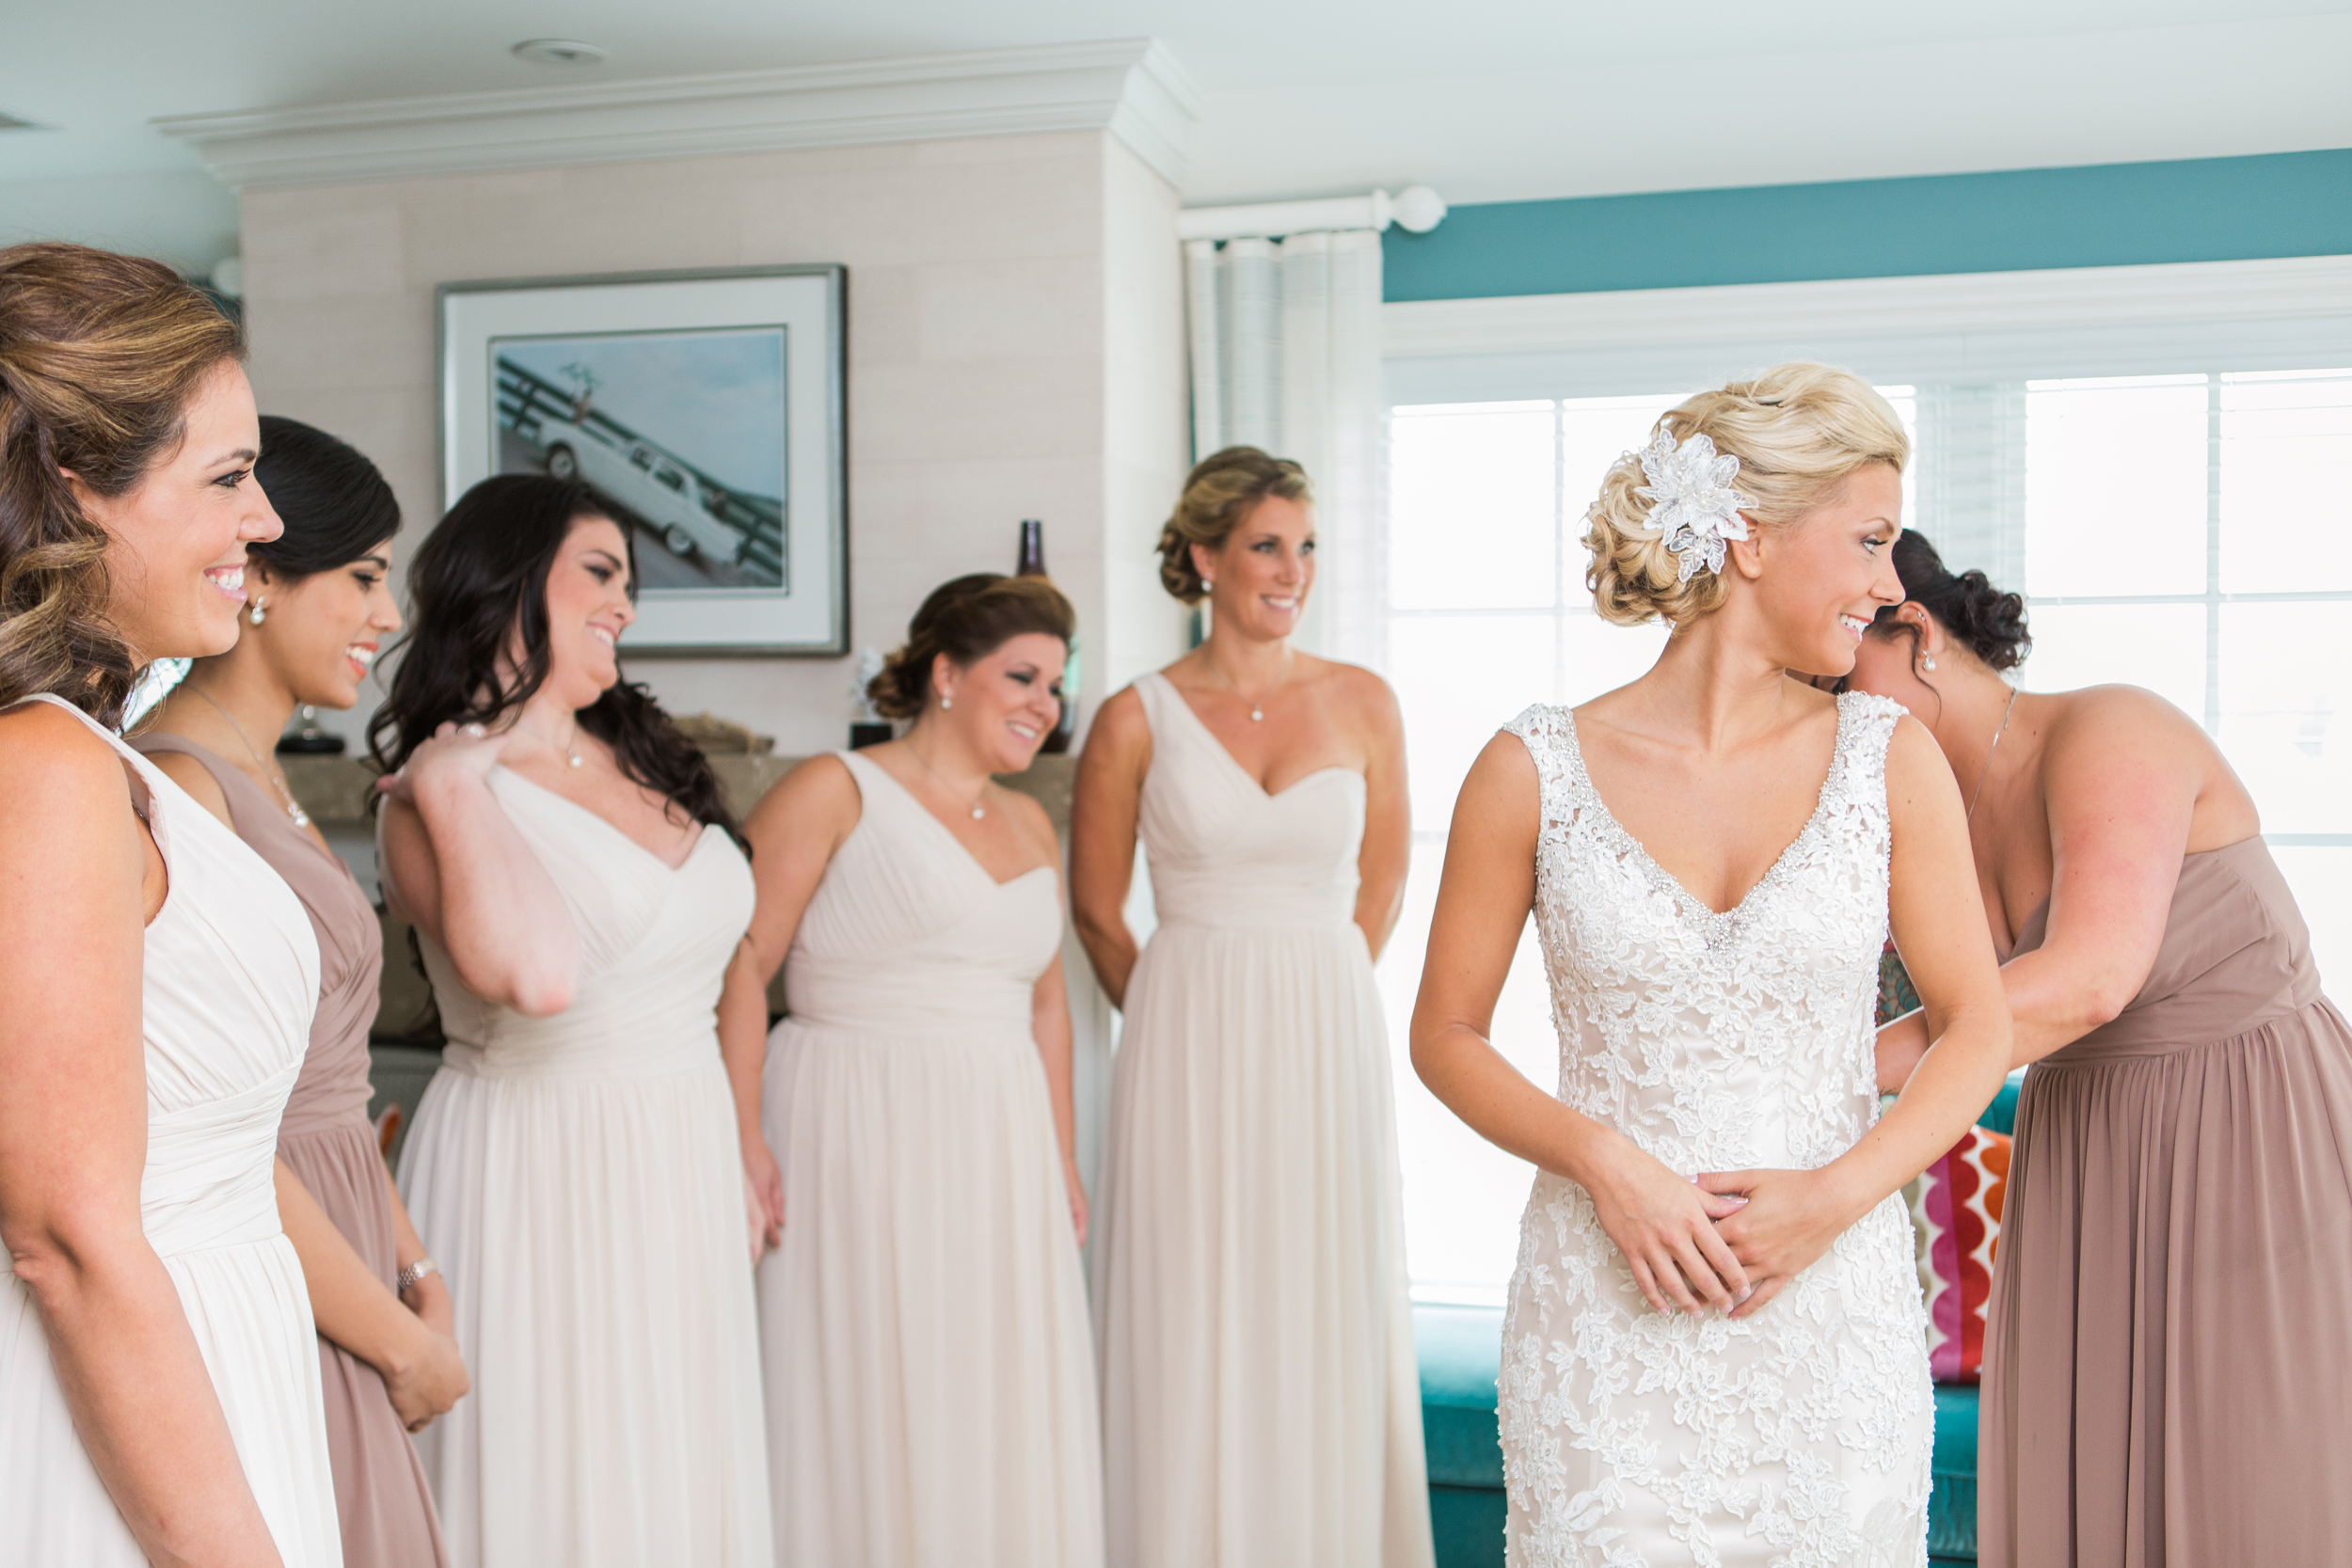 South-Jersey-Wedding-Photographer_The-Reeds-At-Shelter-Haven-Wedding-13.jpg